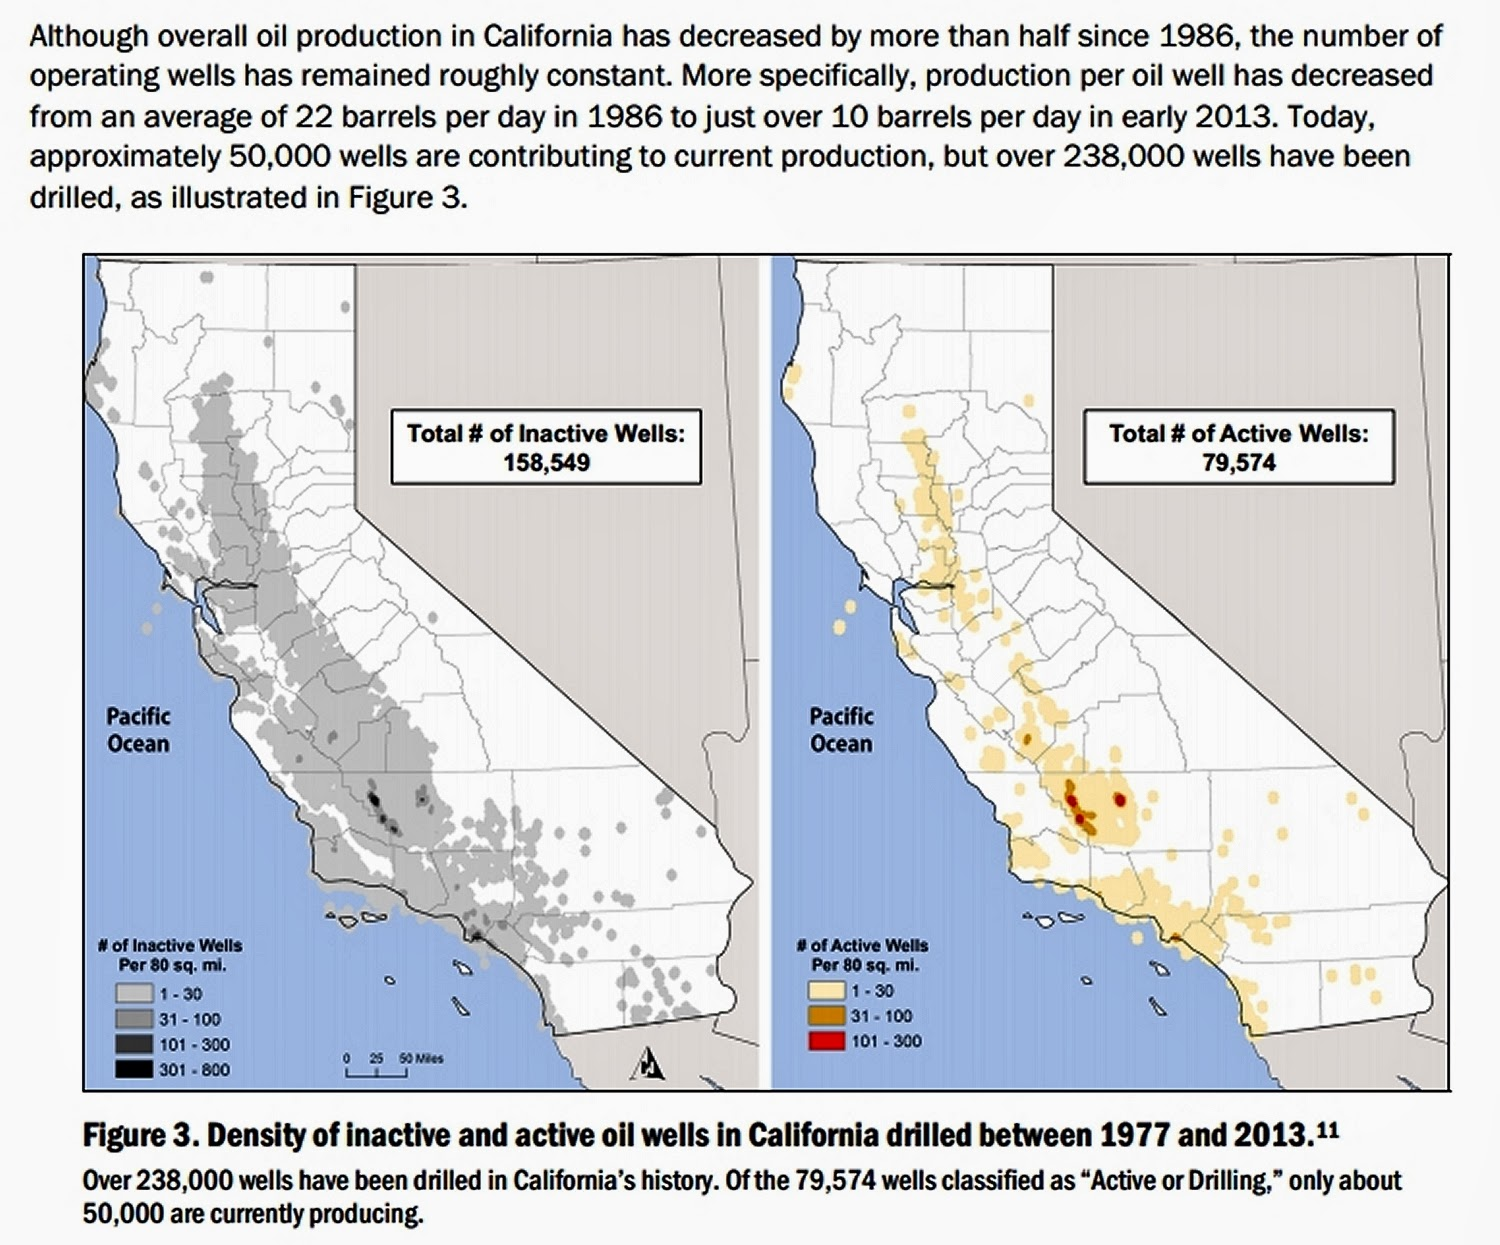 image from drilling california a reality check on the monterey shale december 2013 by j david hughes